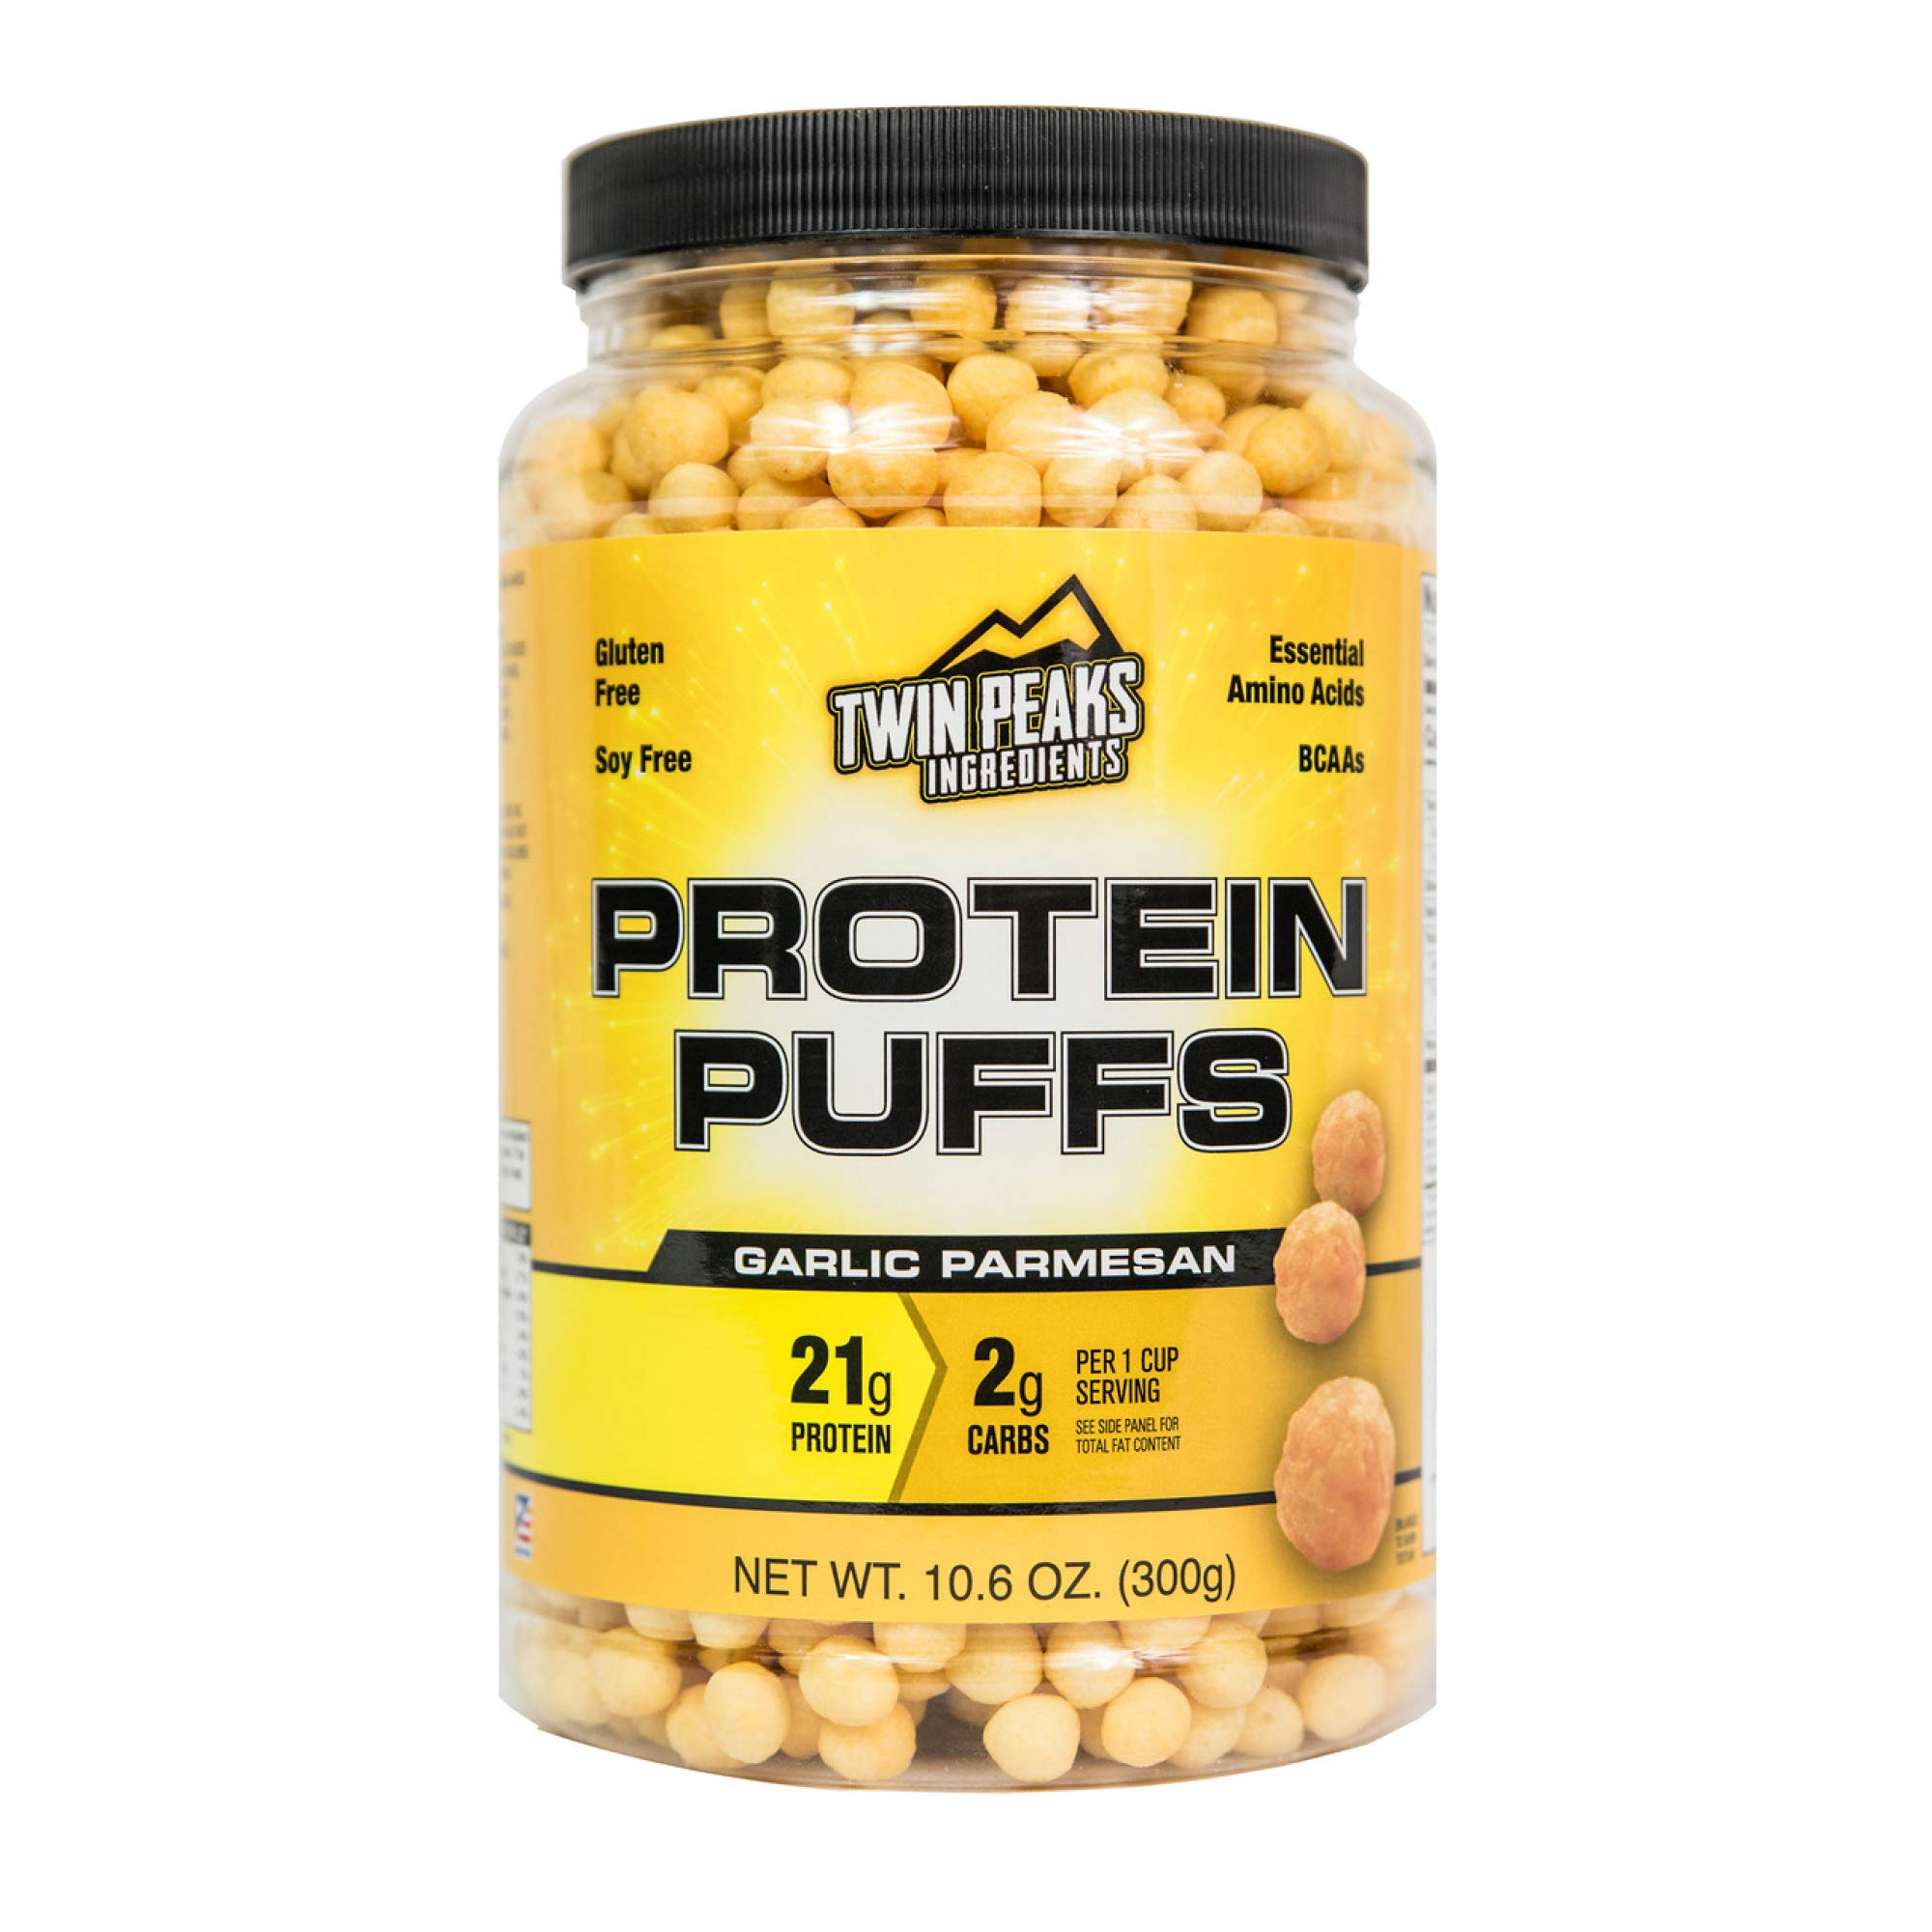 Low Carb Protein Puffs - 21g Protein, 2g Carbs, 130 Cals, Nut Free Baked High Protein Crisps, Keto Friendly, Soy Free, Gluten Free, Potato Free - Best Protein Snack (Garlic Parmesan, 300g/10 Servings)